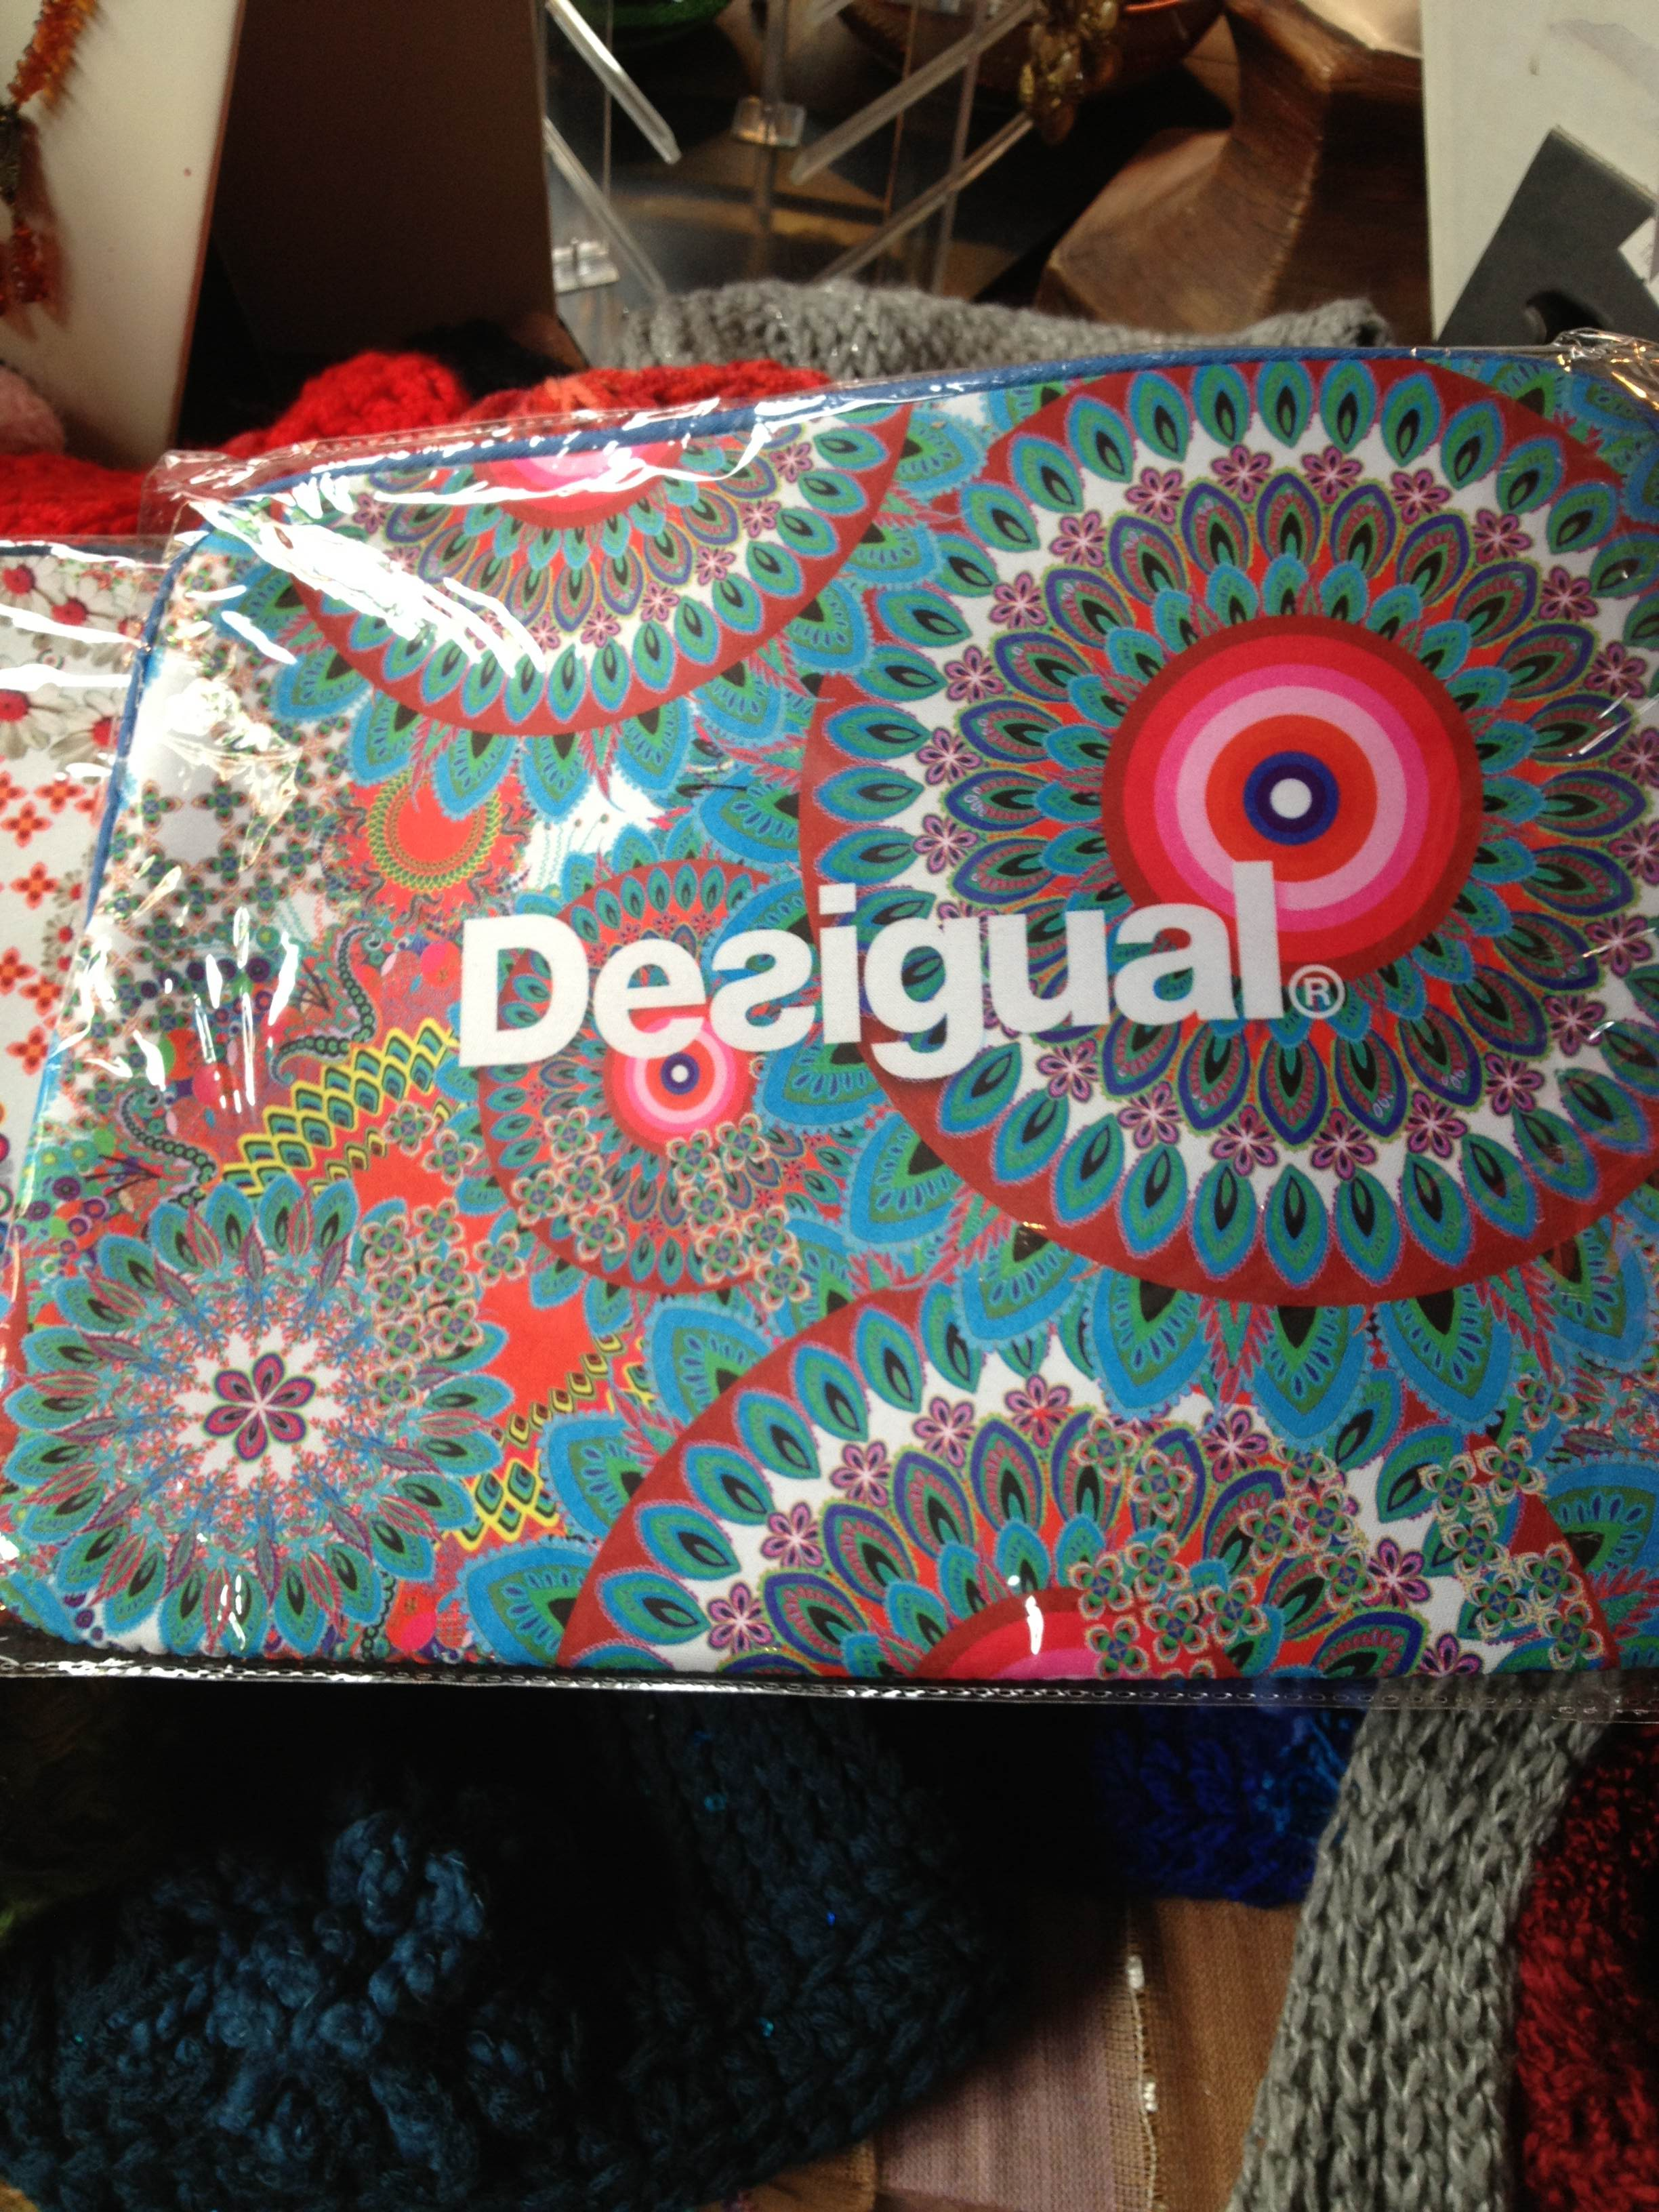 Free Desigual Mini Speakers For Iphone With 200 Purchase